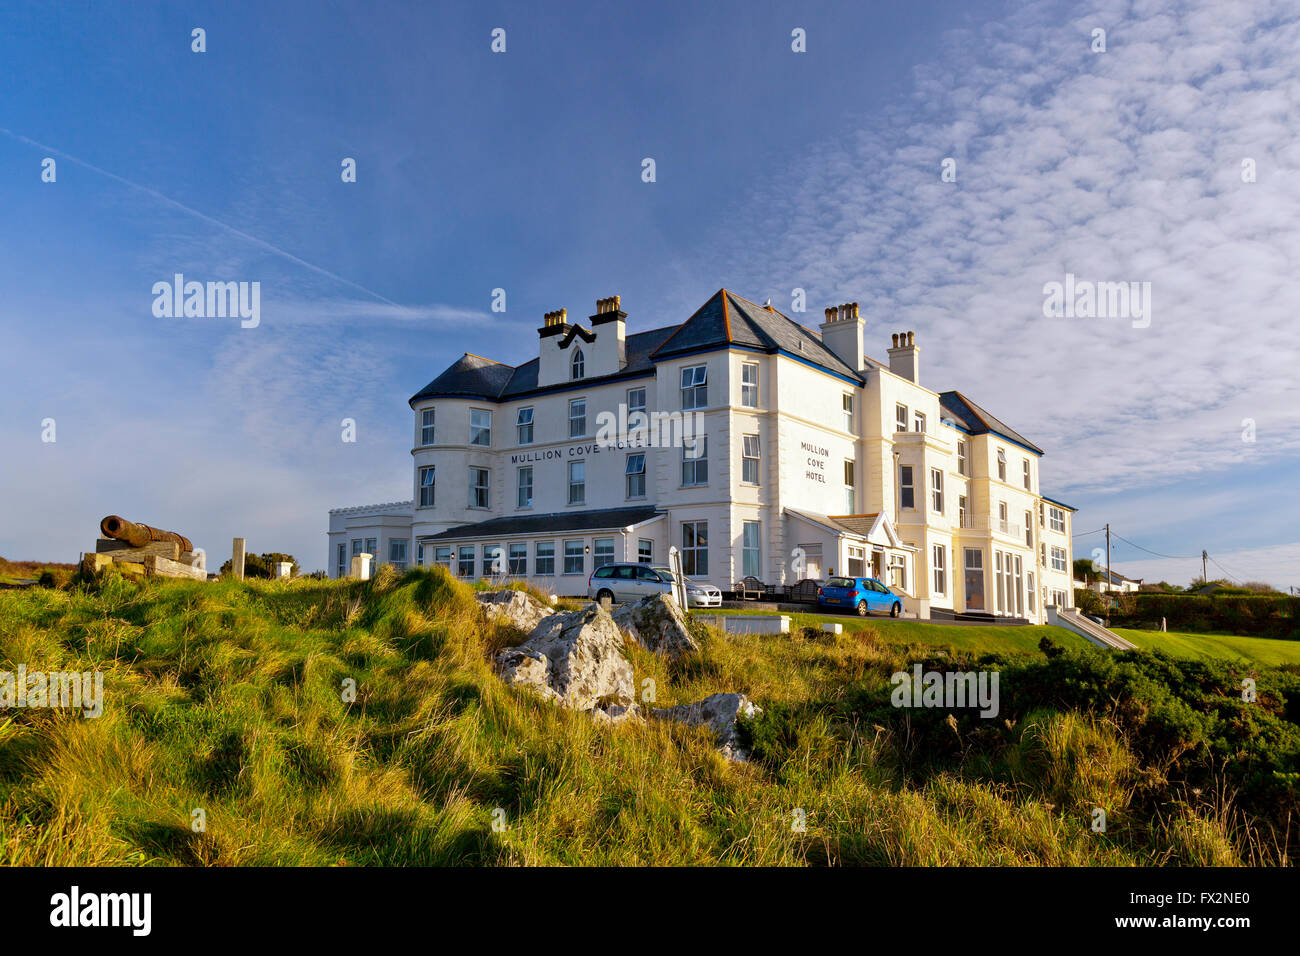 the mullion cove hotel on the cliff top of the lizard. Black Bedroom Furniture Sets. Home Design Ideas